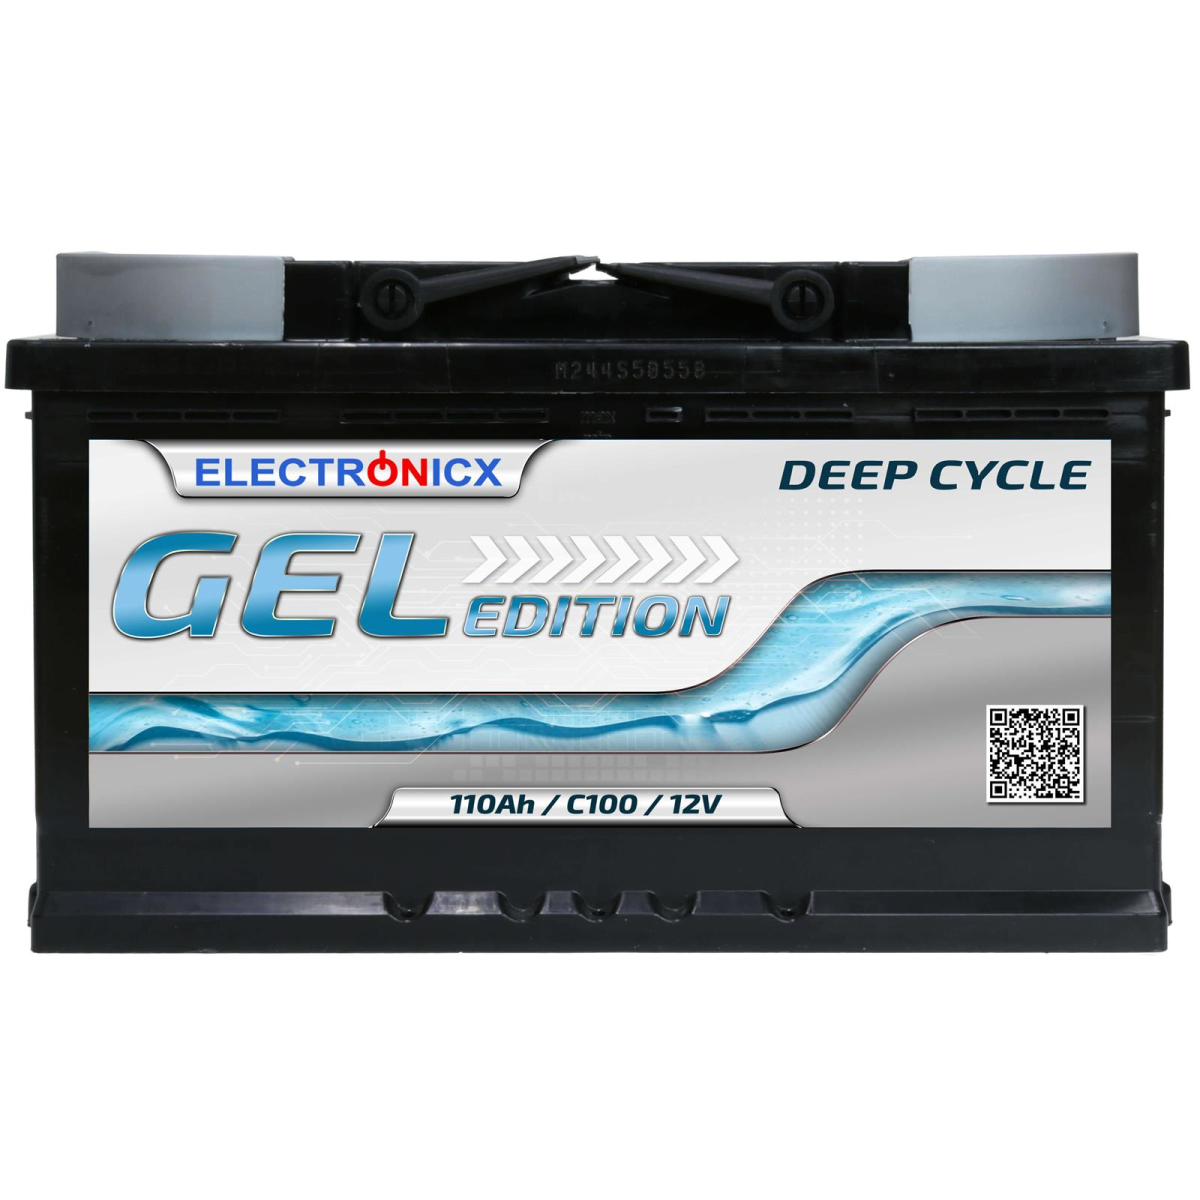 Electronicx Edition Gel Batterie 110 AH 12V Wohnmobil Boot Versorgung